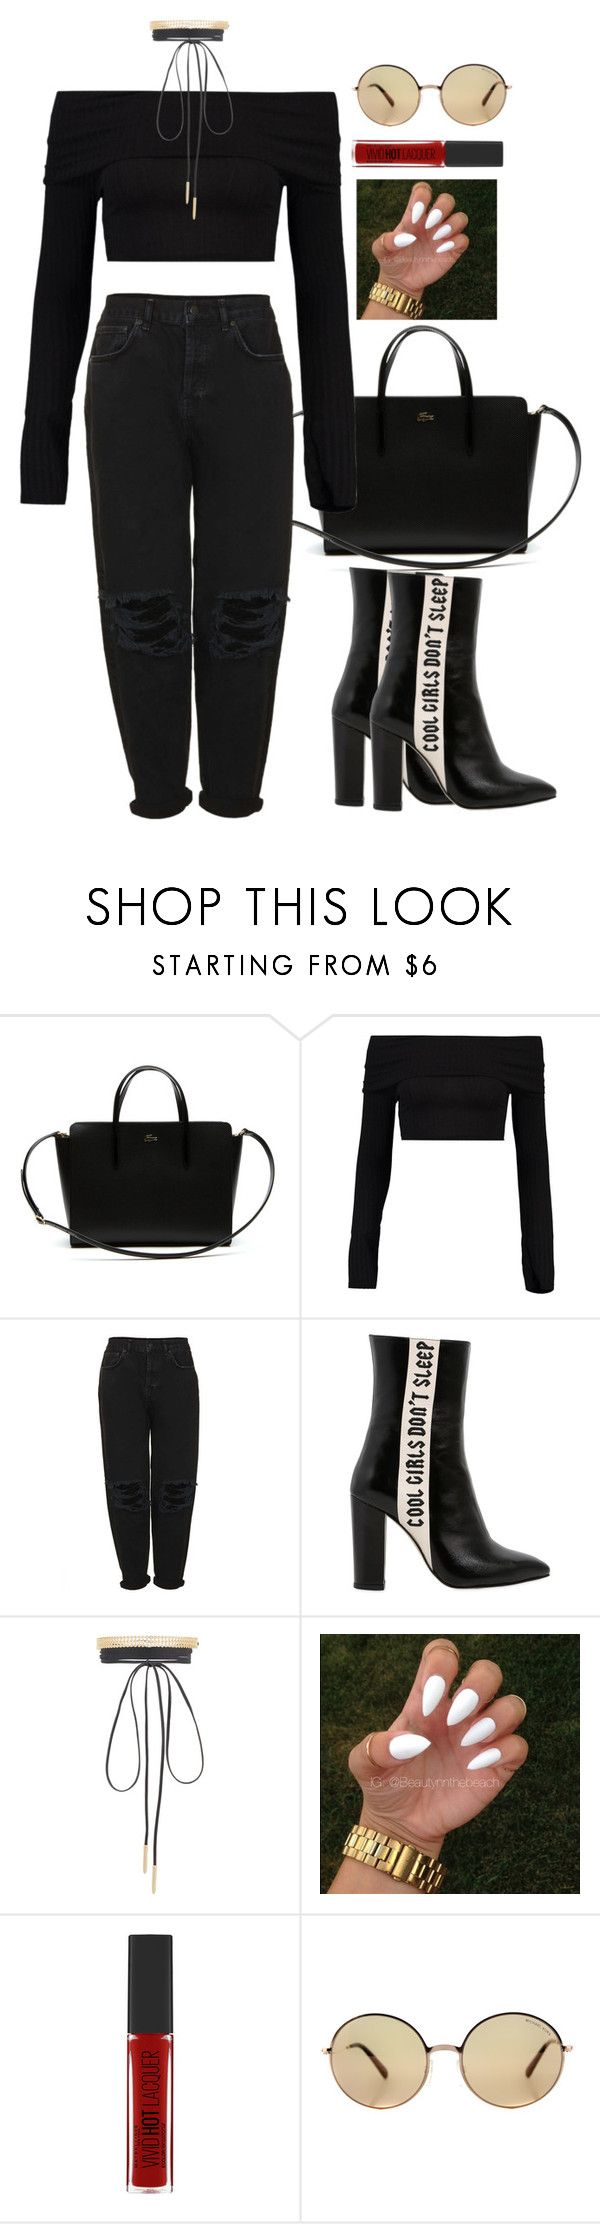 """""""Untitled #1056"""" by karlamichell ❤ liked on Polyvore featuring Lacoste, Boohoo, Boutique, Havva, Lydell NYC, Maybelline and Michael Kors"""